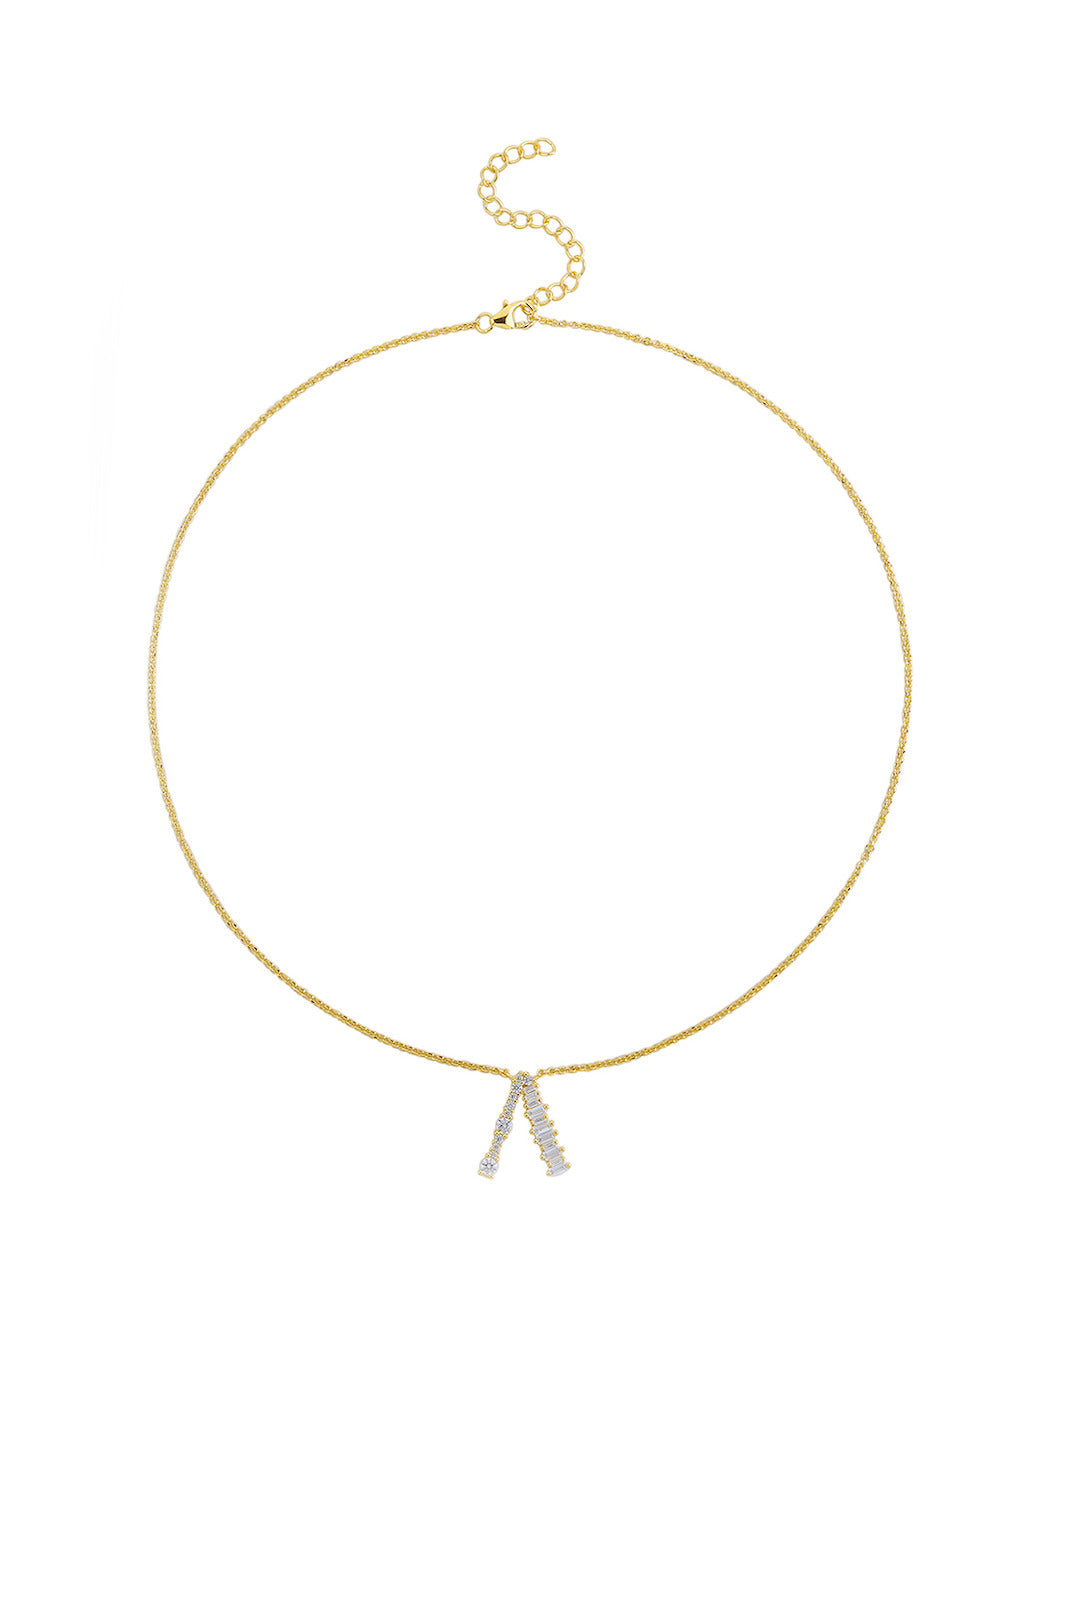 Gold Plated Sterling Silver Initial Necklace - Letter A Detail